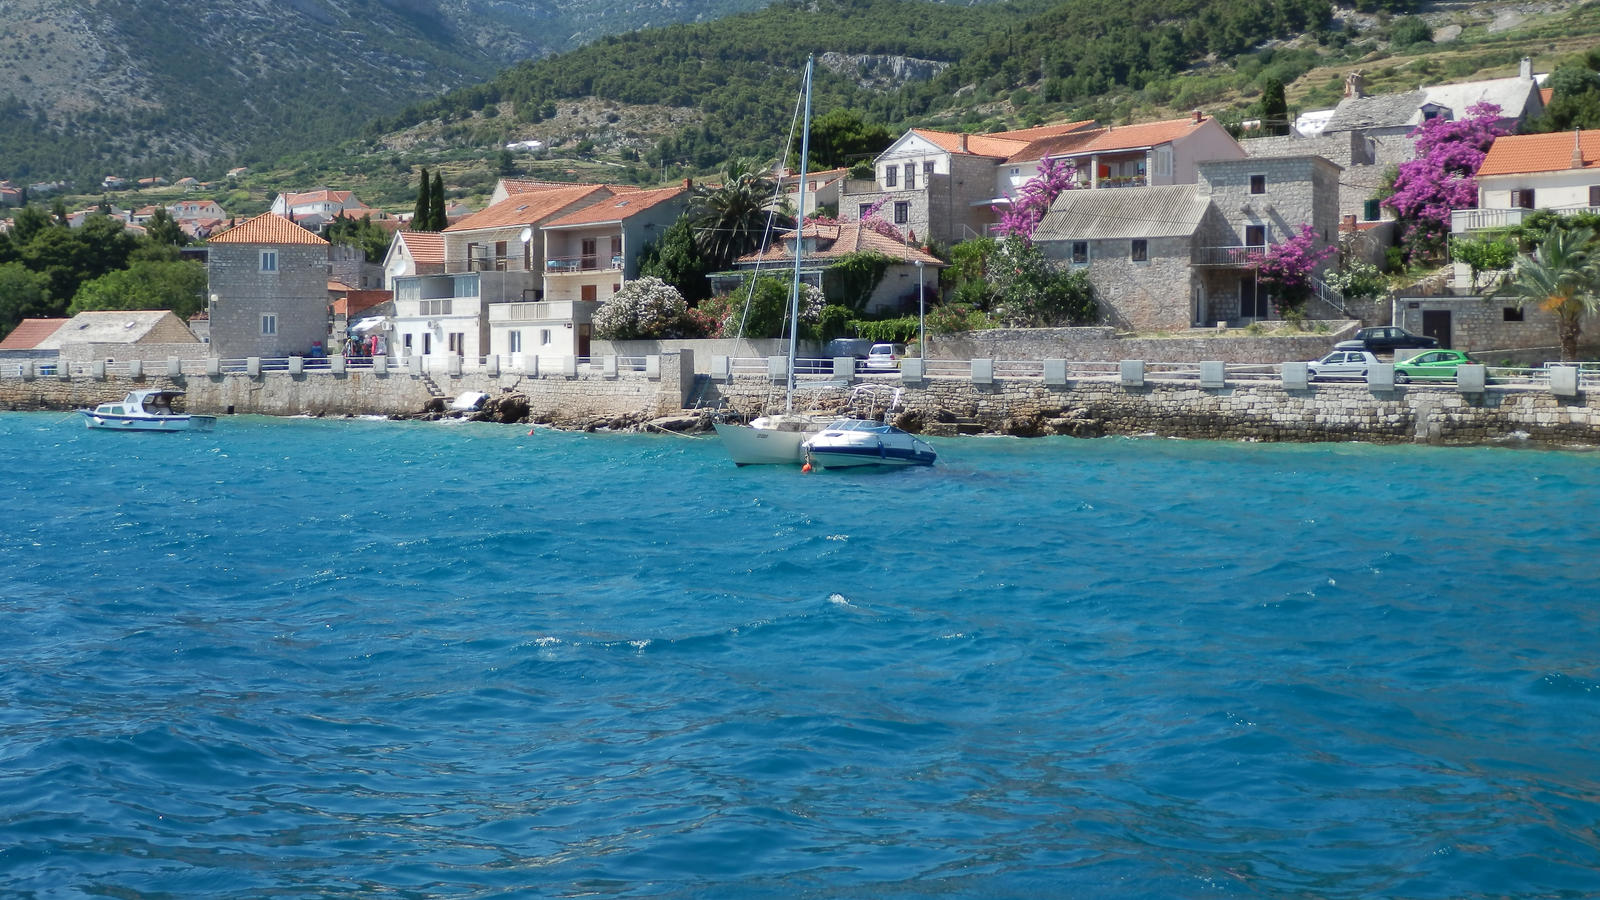 Brac Island Croatia  City pictures : Bol, Island of Brac, Croatia by BubiMandril on deviantART